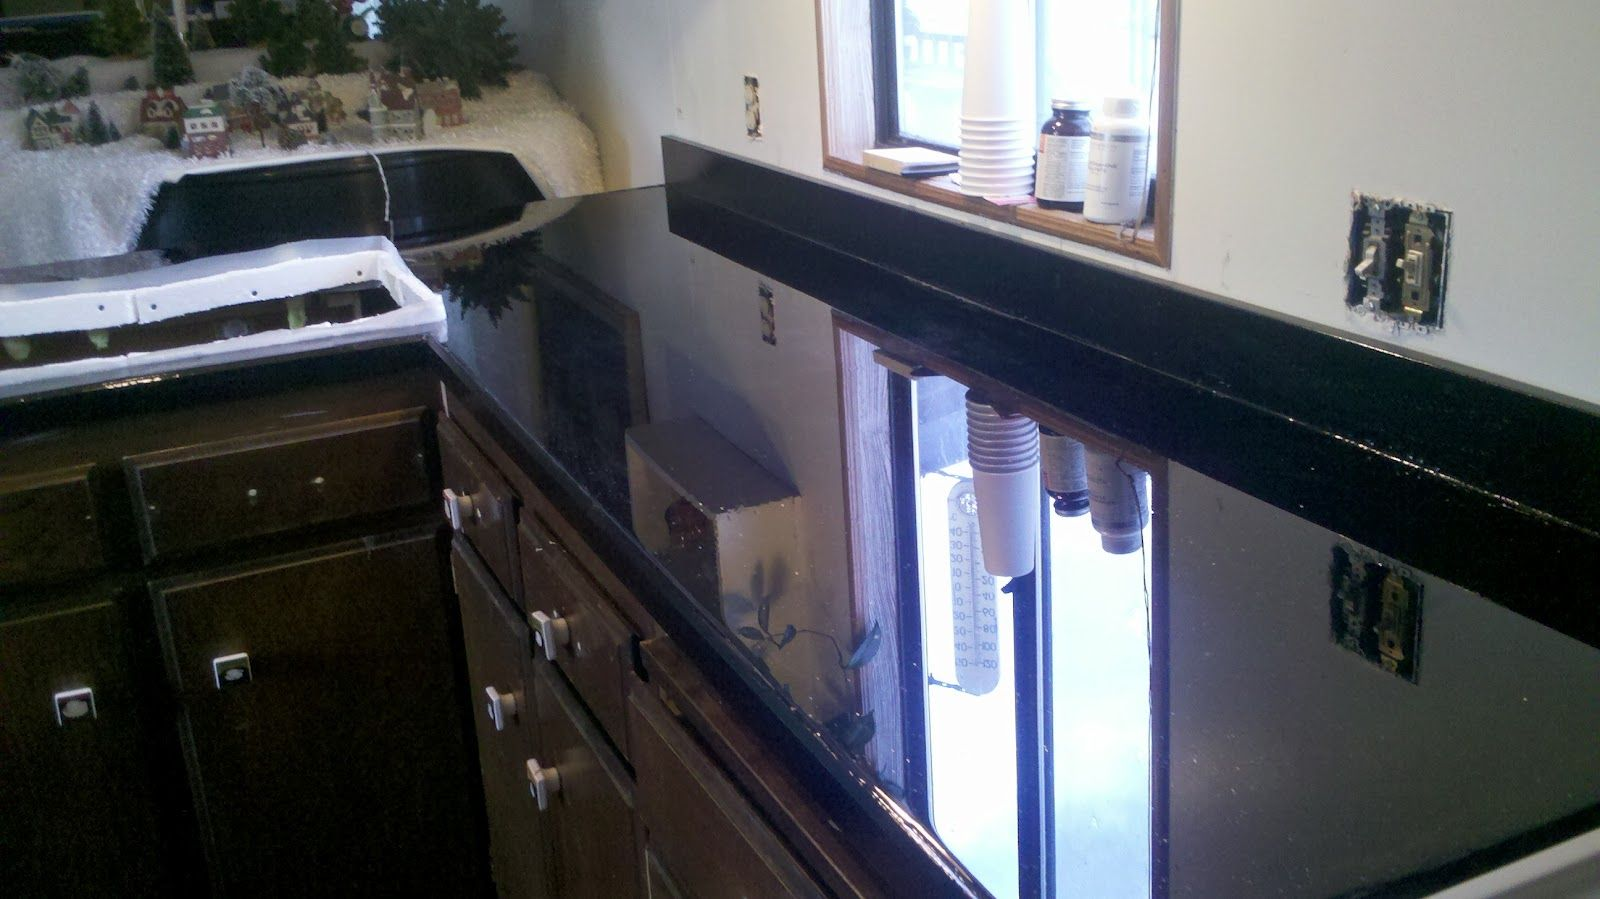 countertops madeputting down plywood with fabric on top, then